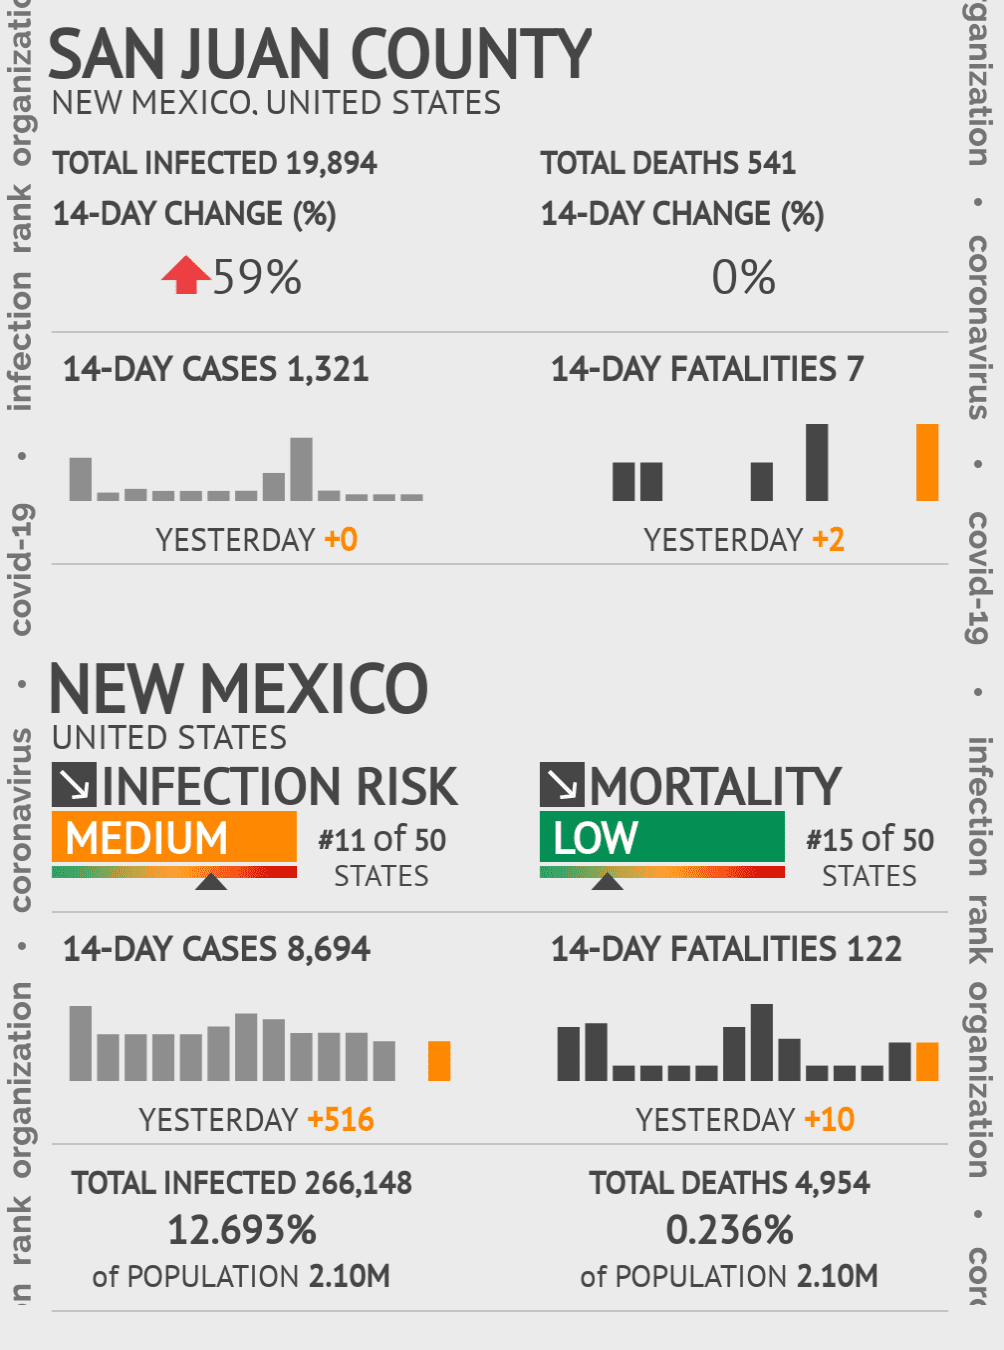 San Juan County Coronavirus Covid-19 Risk of Infection on March 23, 2021